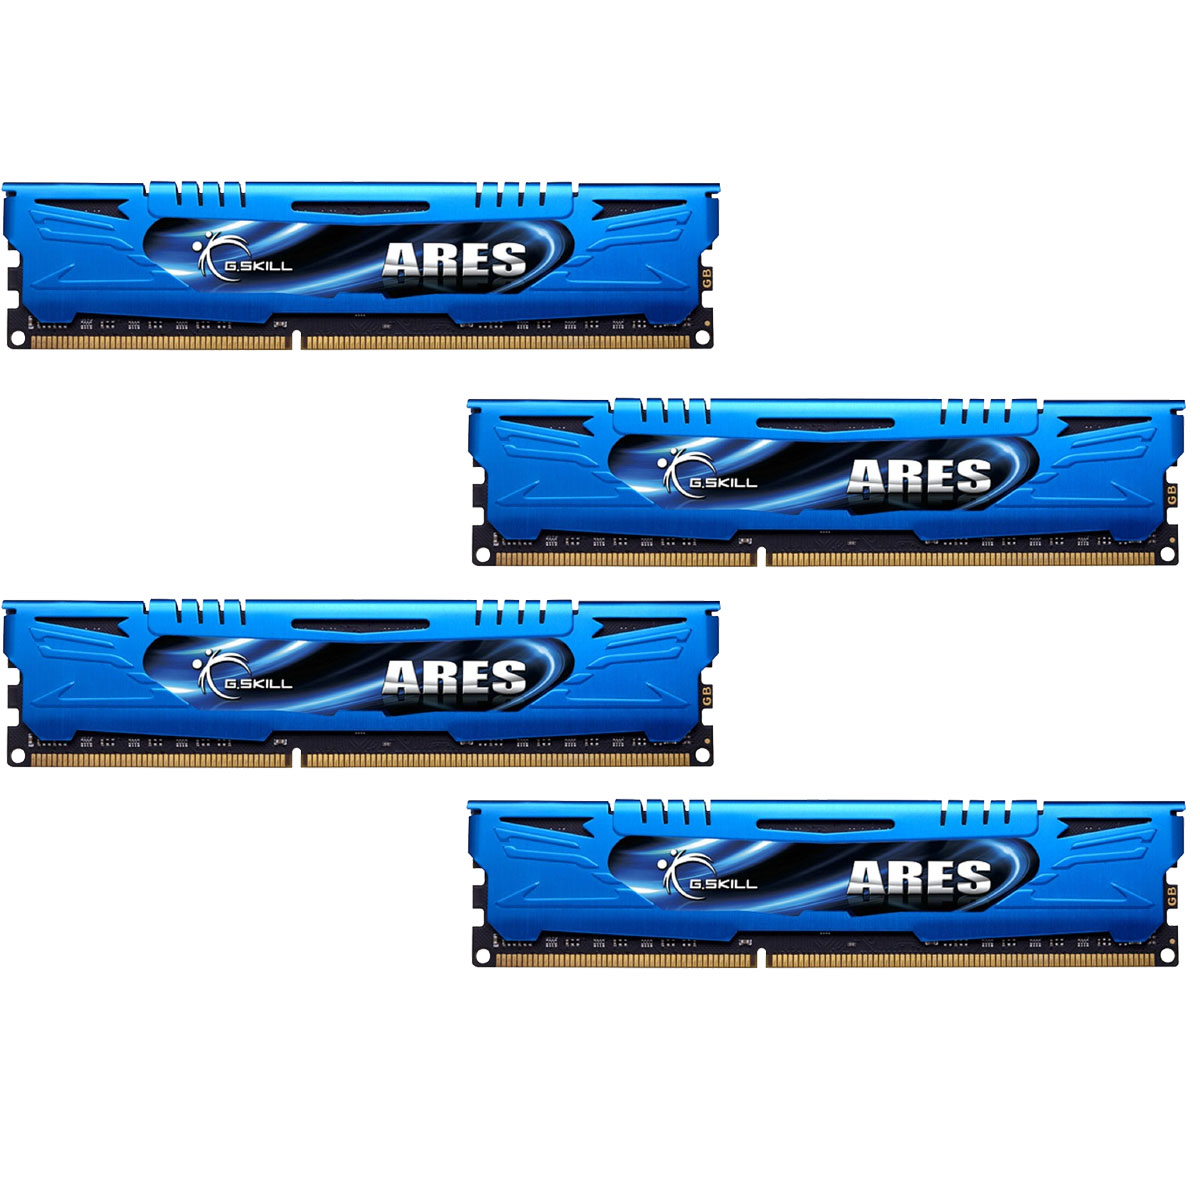 Mémoire PC G.Skill Ares Blue Series 16 Go (4 x 4 Go) DDR3 2133 MHz CL9 Kit Quad Channel DDR3 PC3-17000 - F3-2133C9Q-16GAB (garantie à vie par G.Skill)